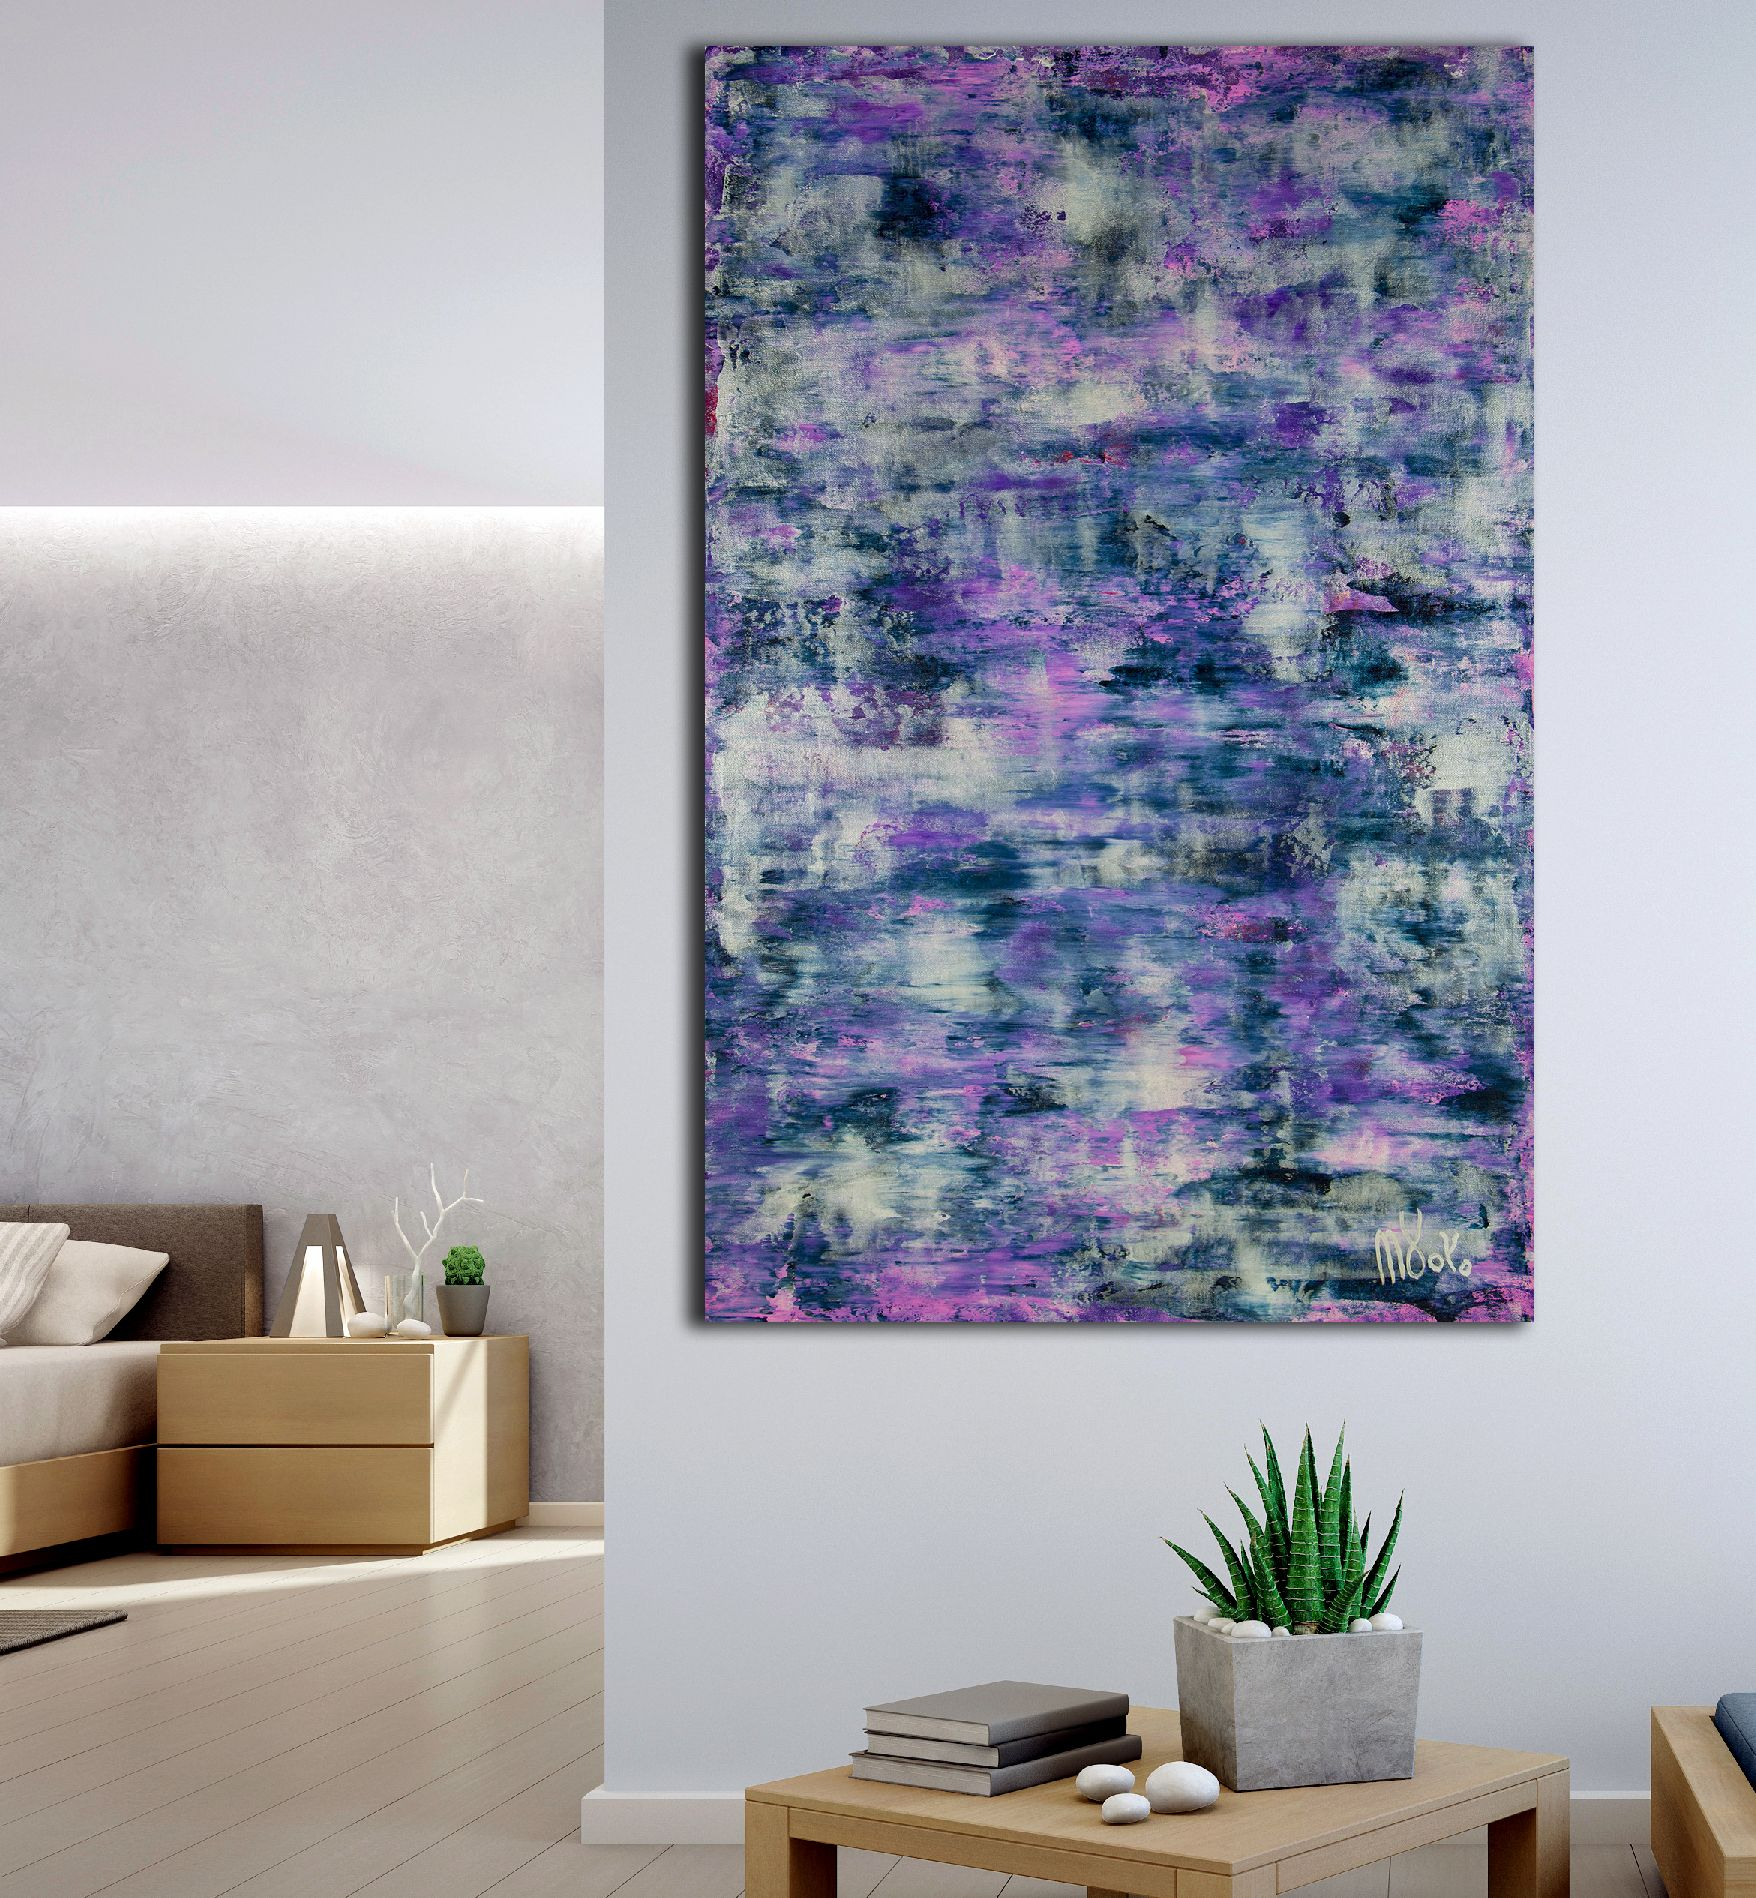 Room View / Silver Clouds (Over Purple) / (2020) by Nestor Toro